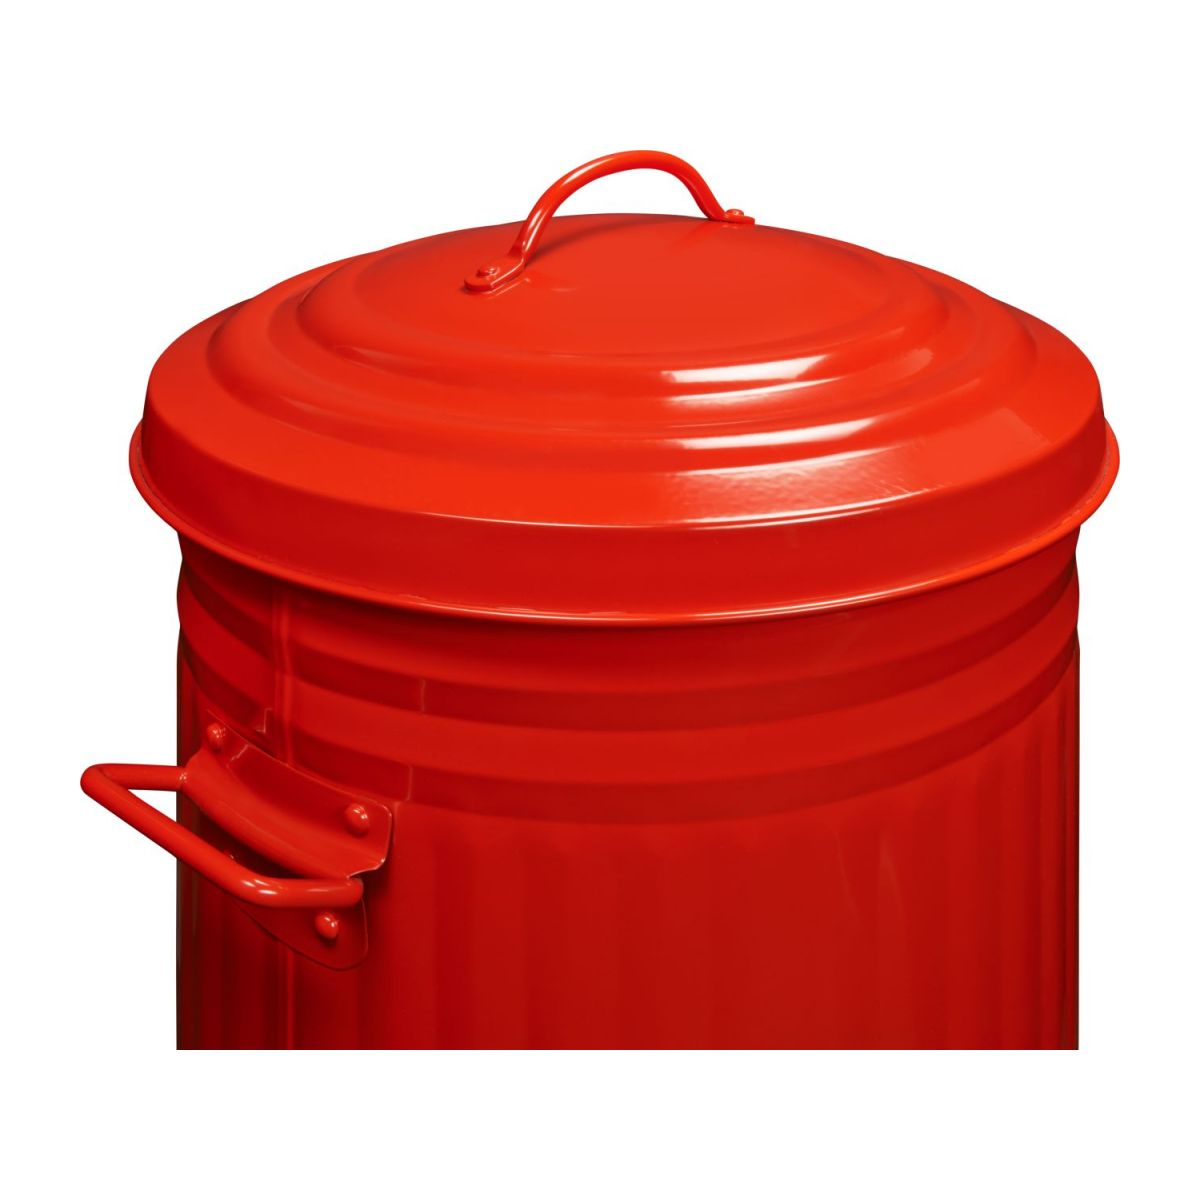 Round trash can, red 52L n°6